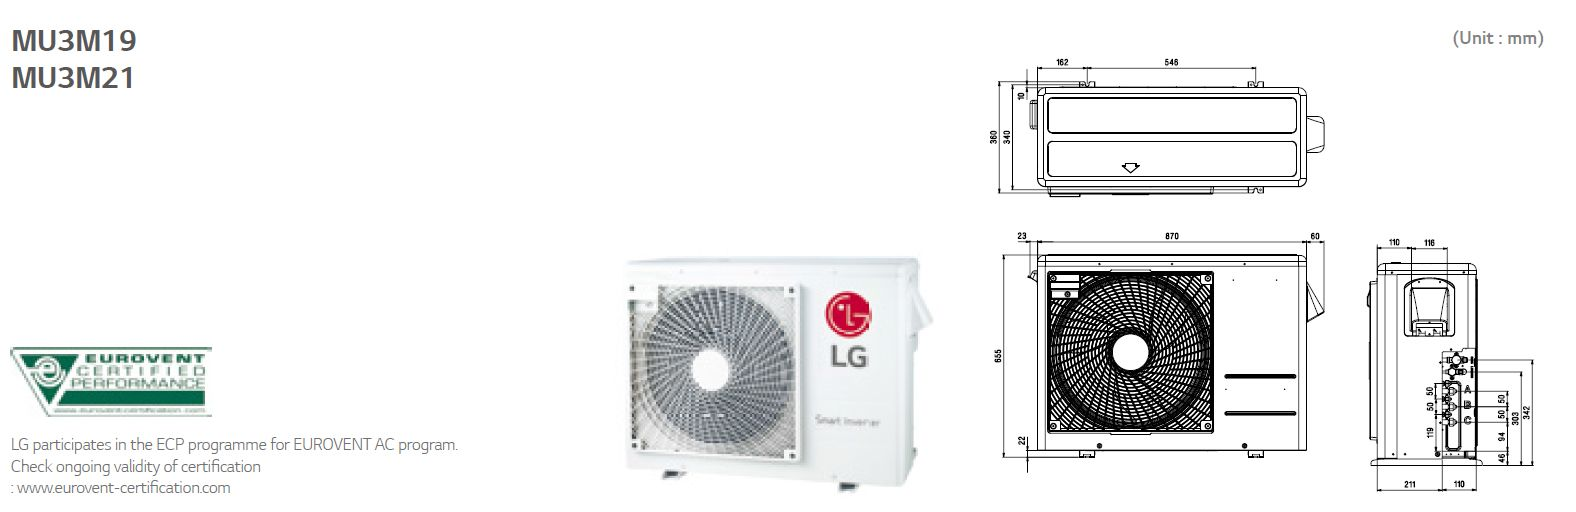 Lg Air Conditioning MU3M19 UE4 Multi Inverter Heat Pump Wall Mounted